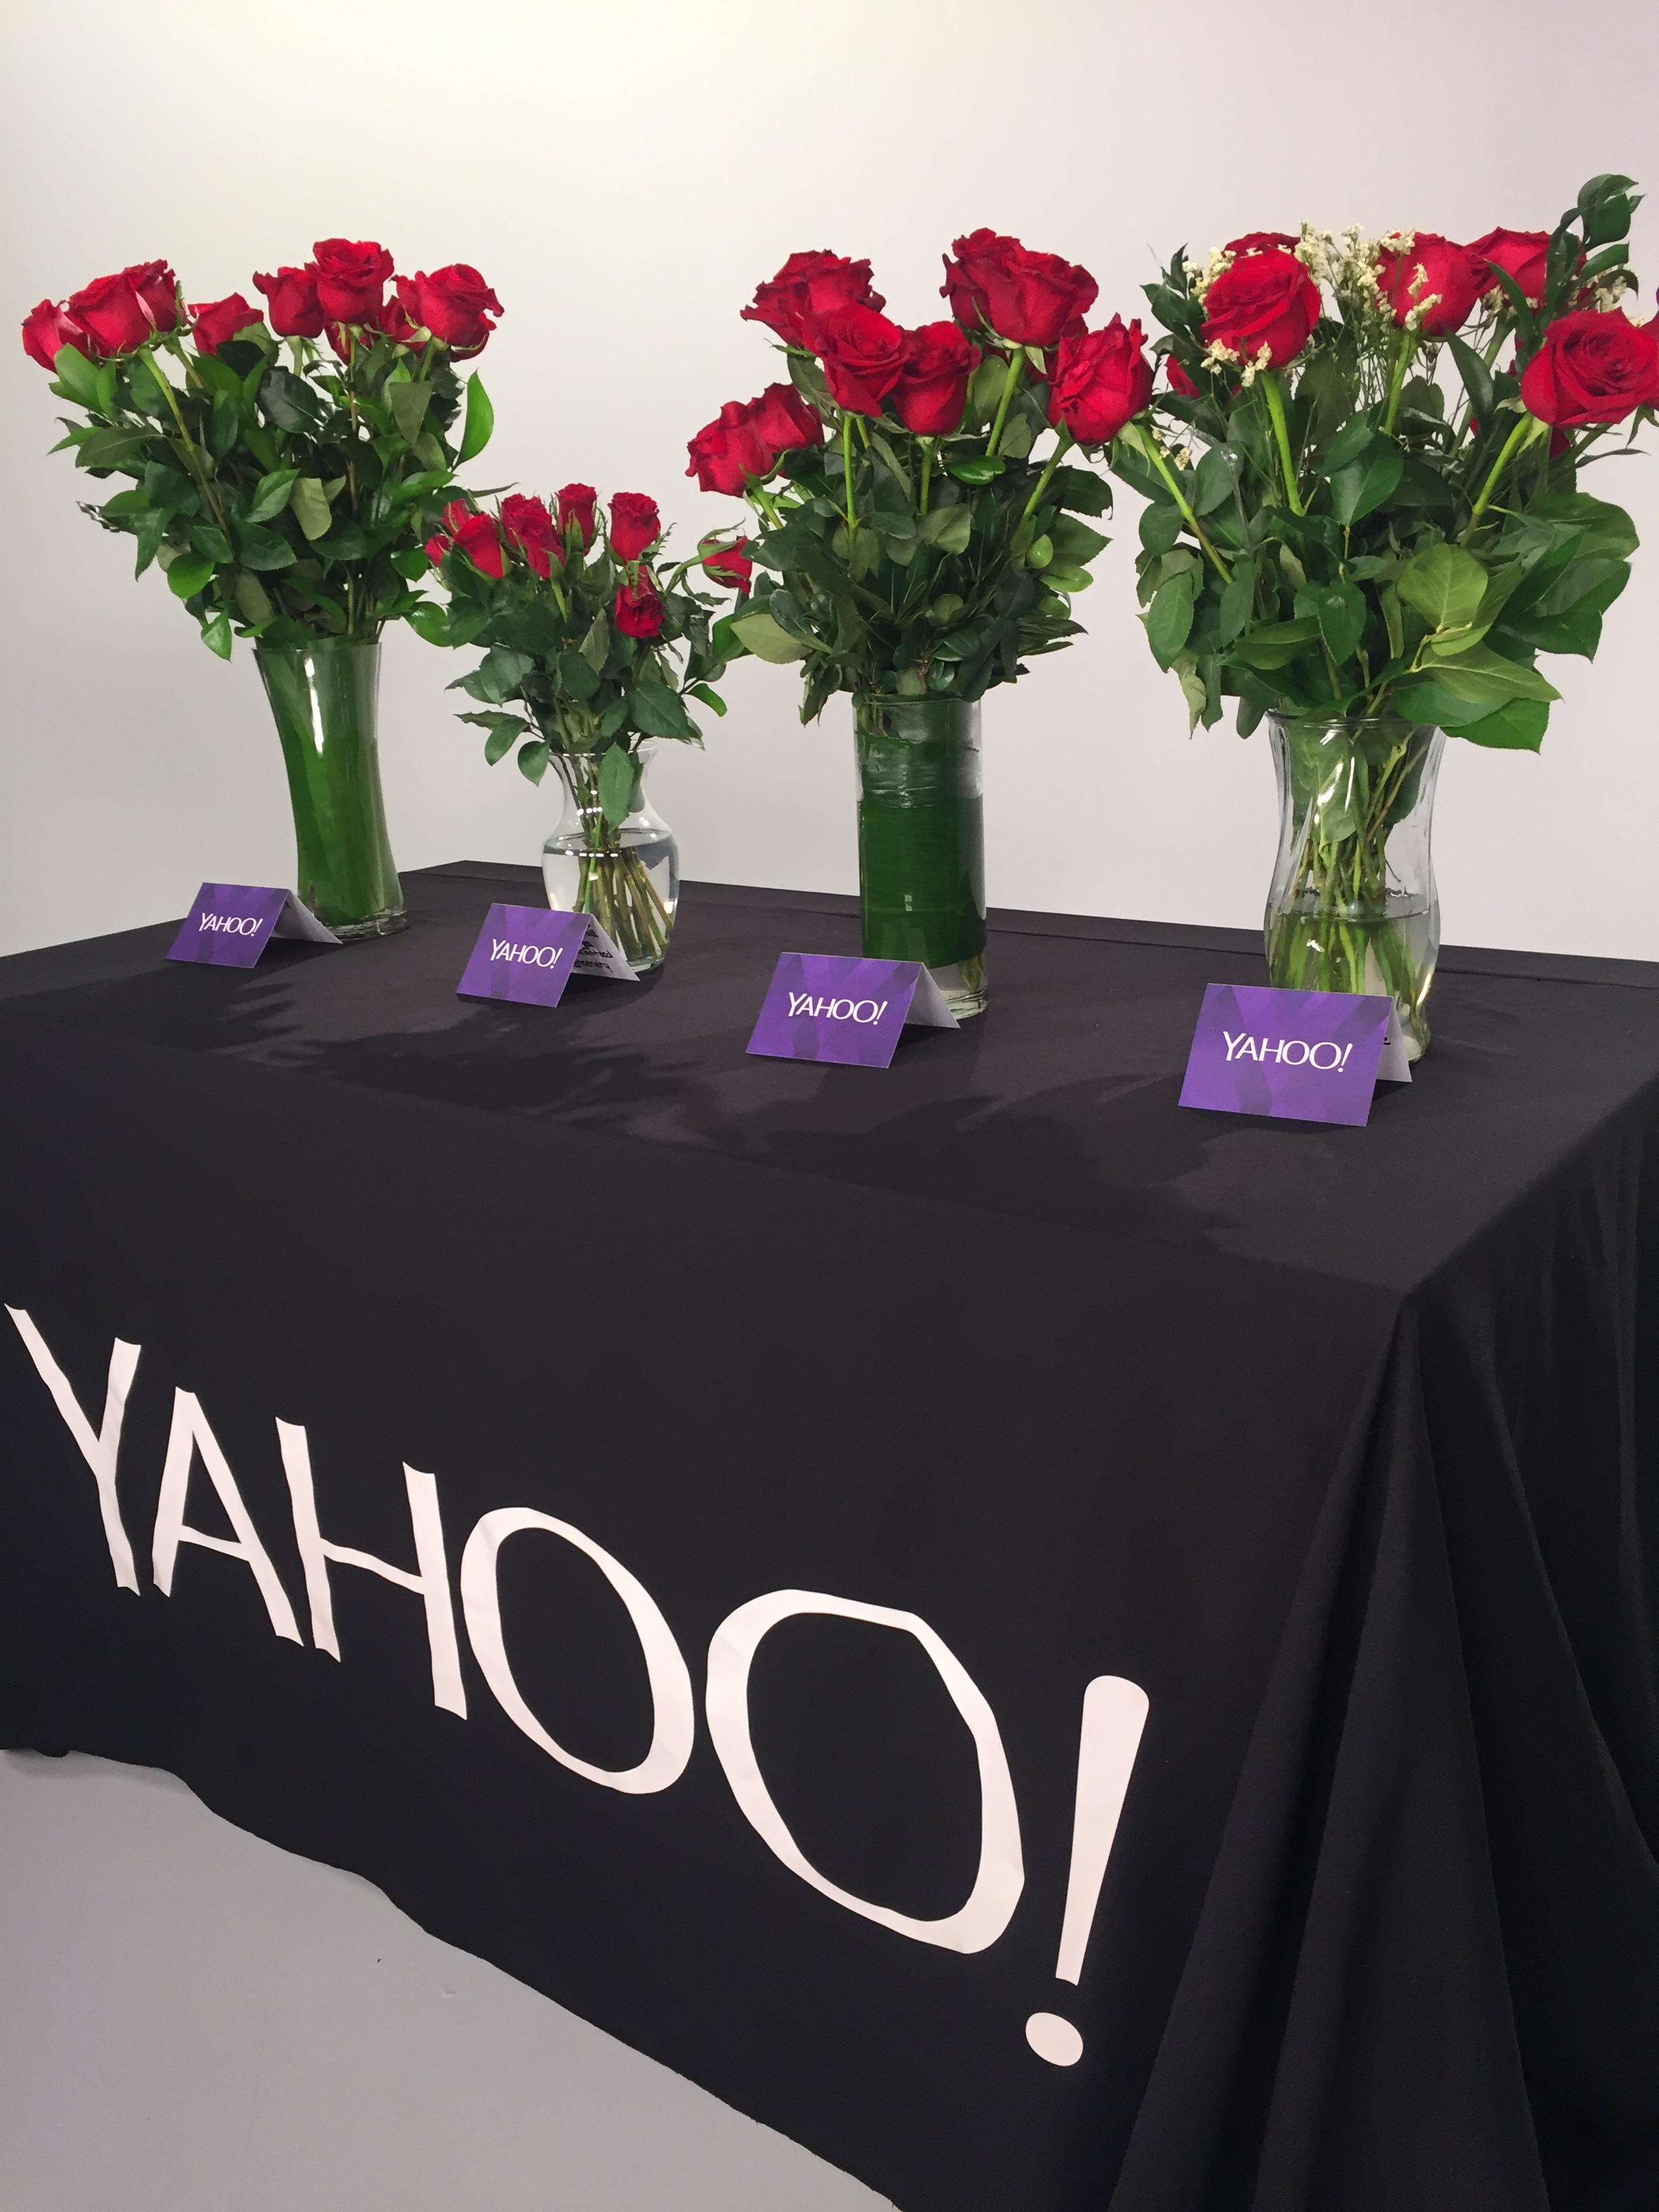 Giving flowers this Valentine's Day? We tested delivery services.